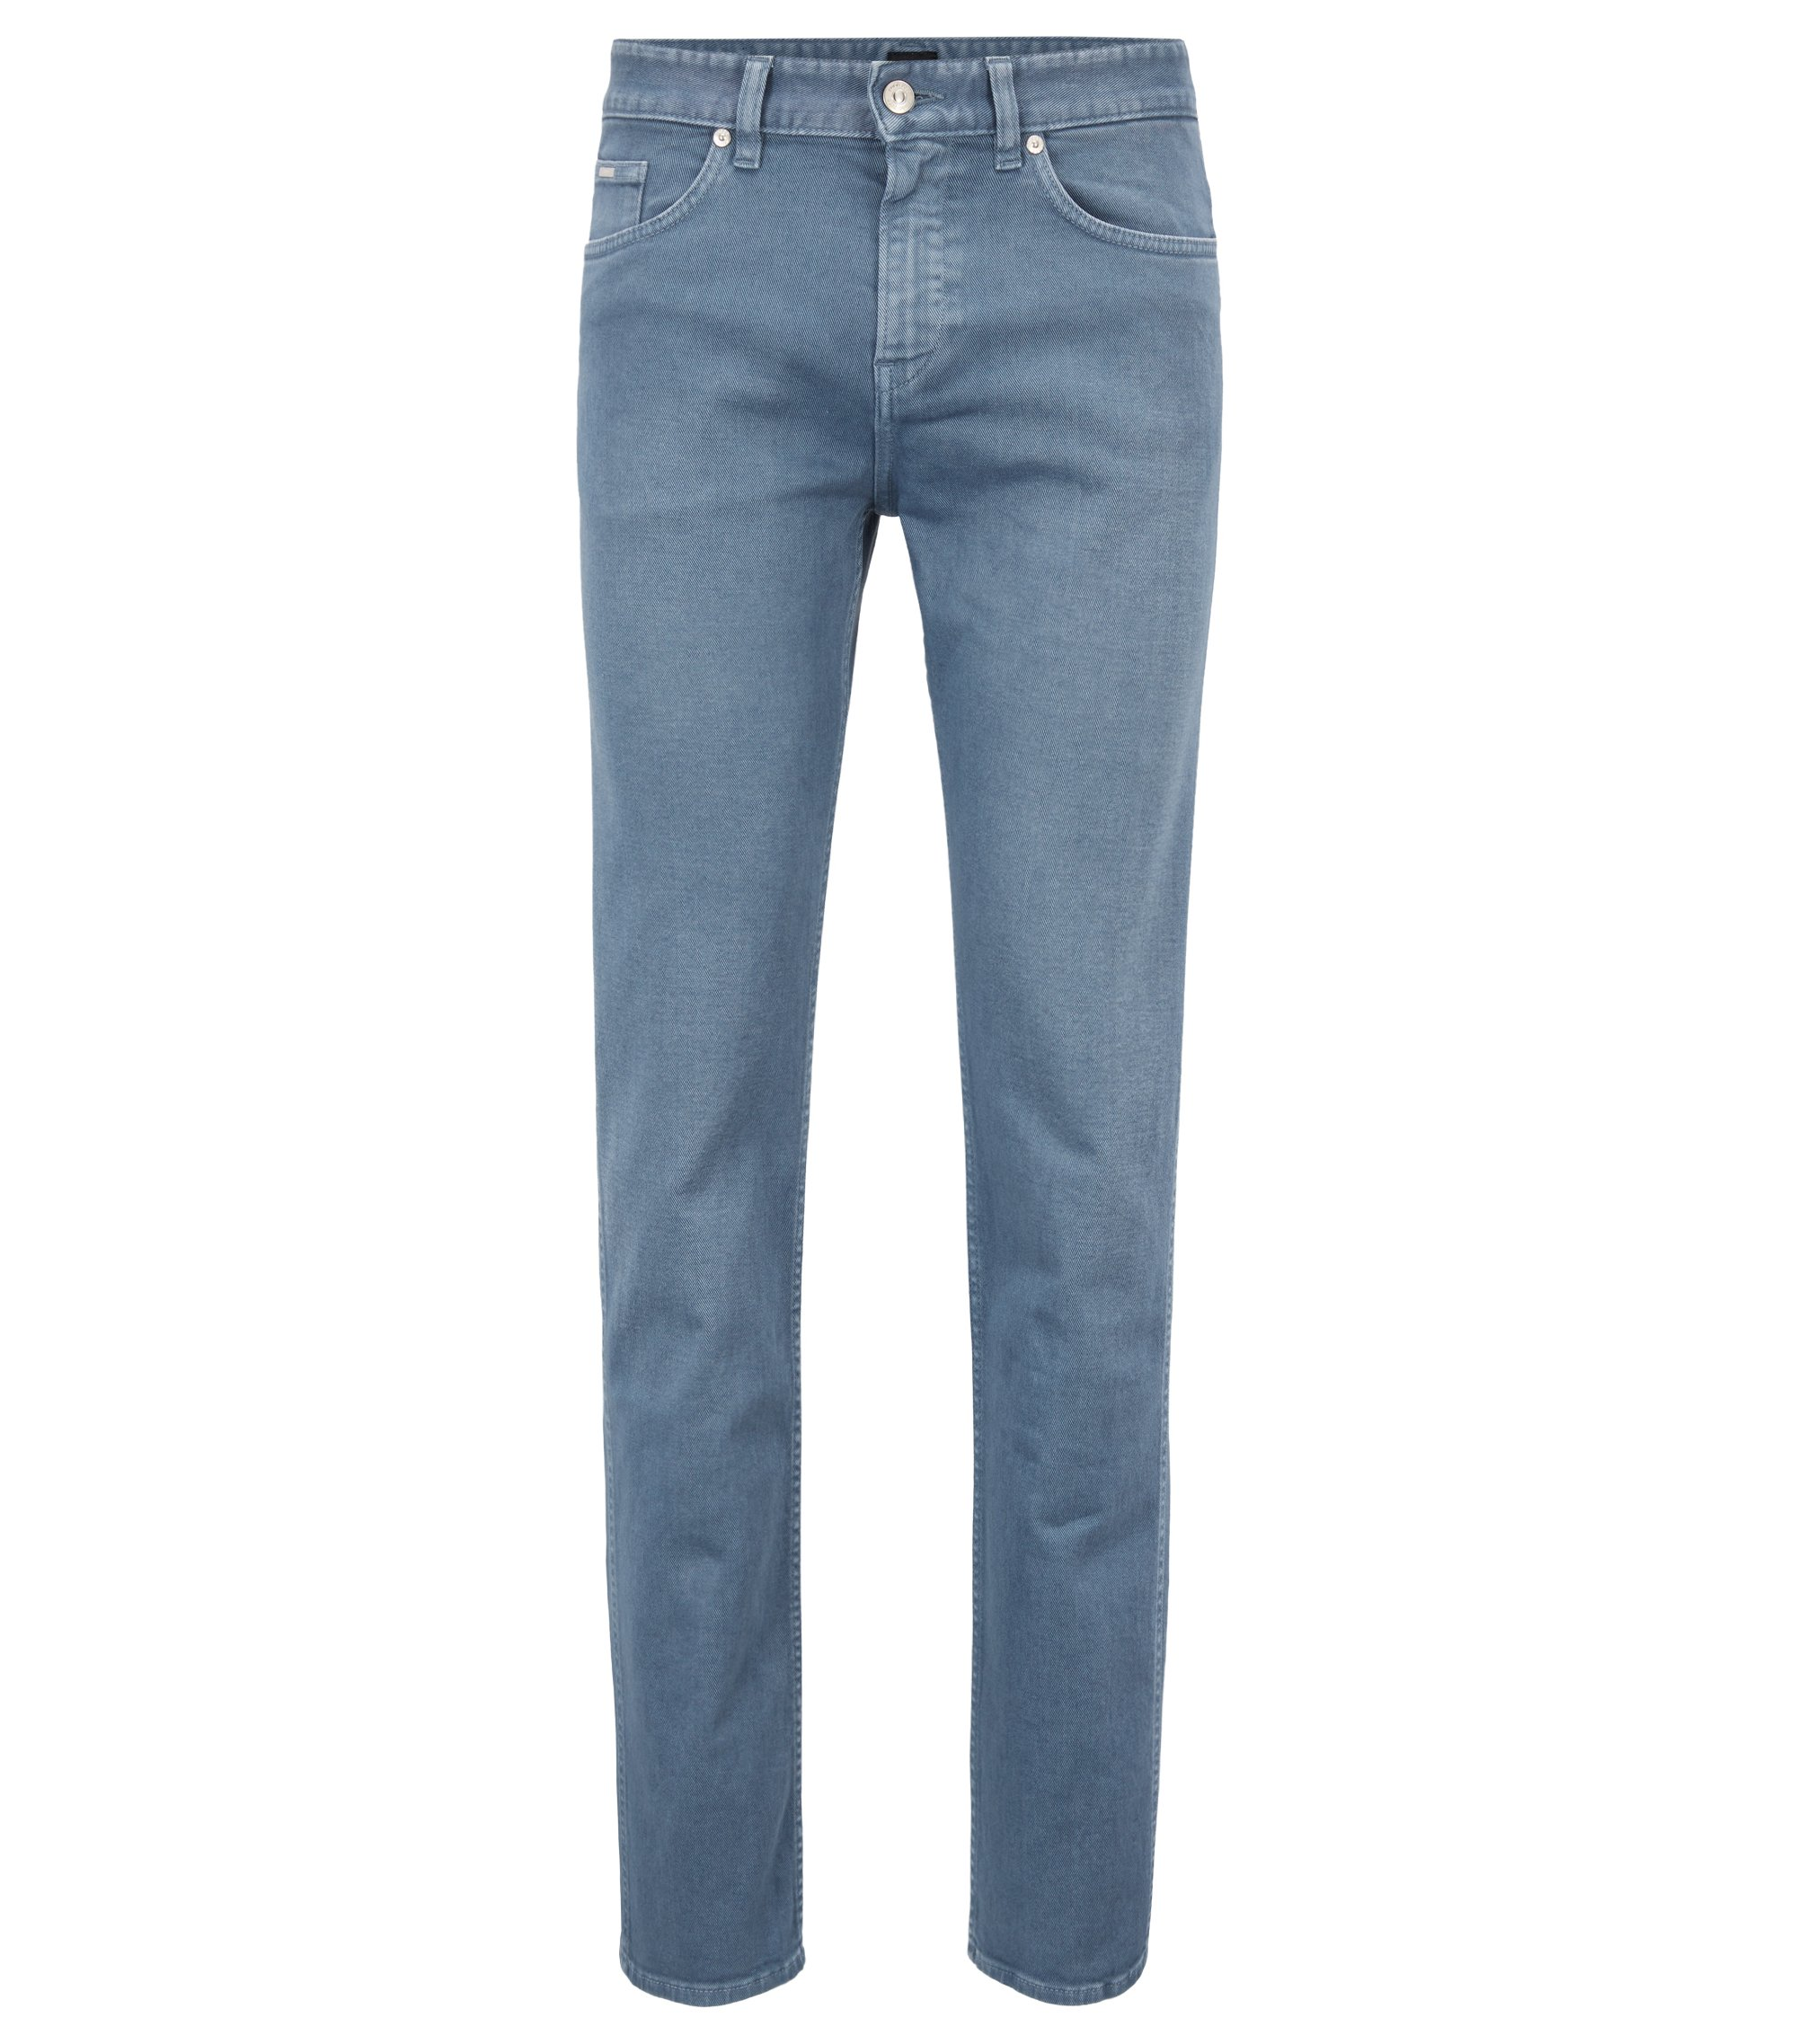 Slim-Fit Jeans aus gefärbtem Stretch-Denim, Blau